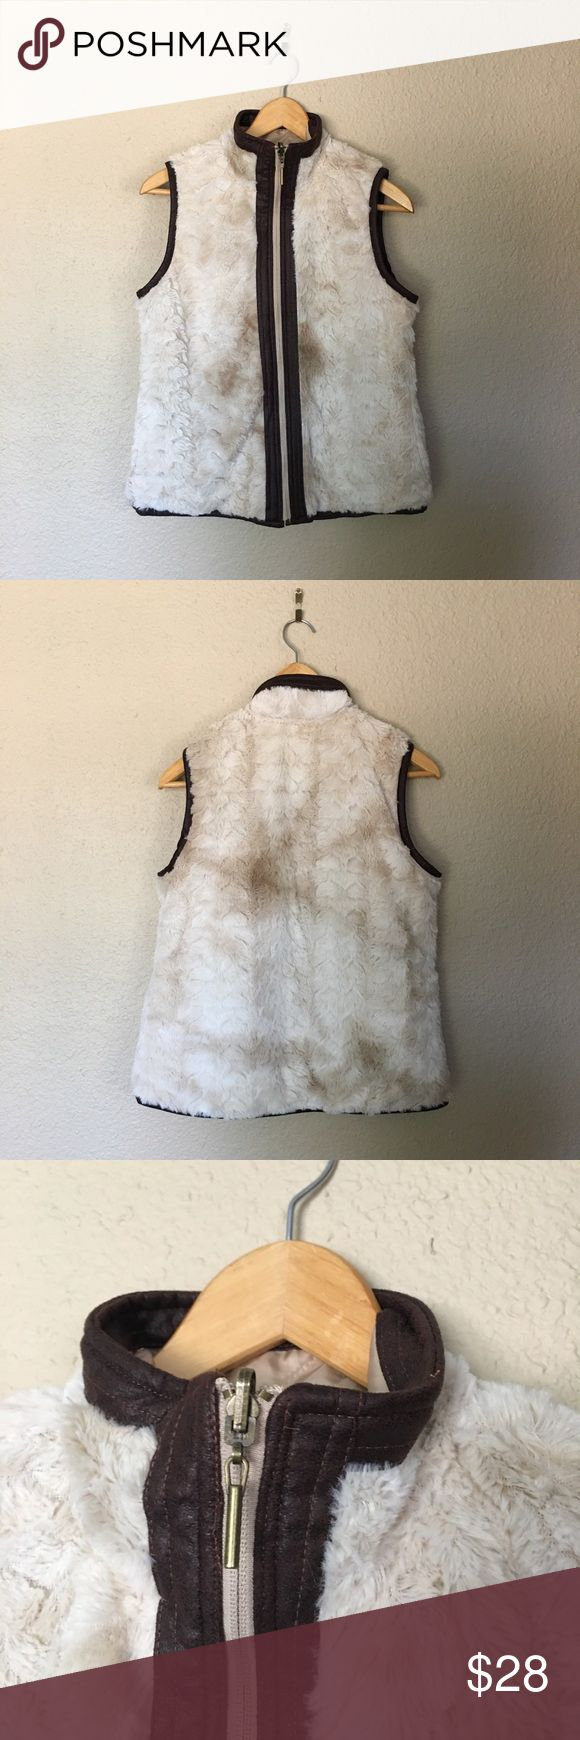 Cream and Brown Faux Fur Vest Tan Faux Fur Fuzzy Vest. Reversible to a water resistant side. Great condition. Pockets on both sides ac-tiv-ology Jackets & Coats Vests